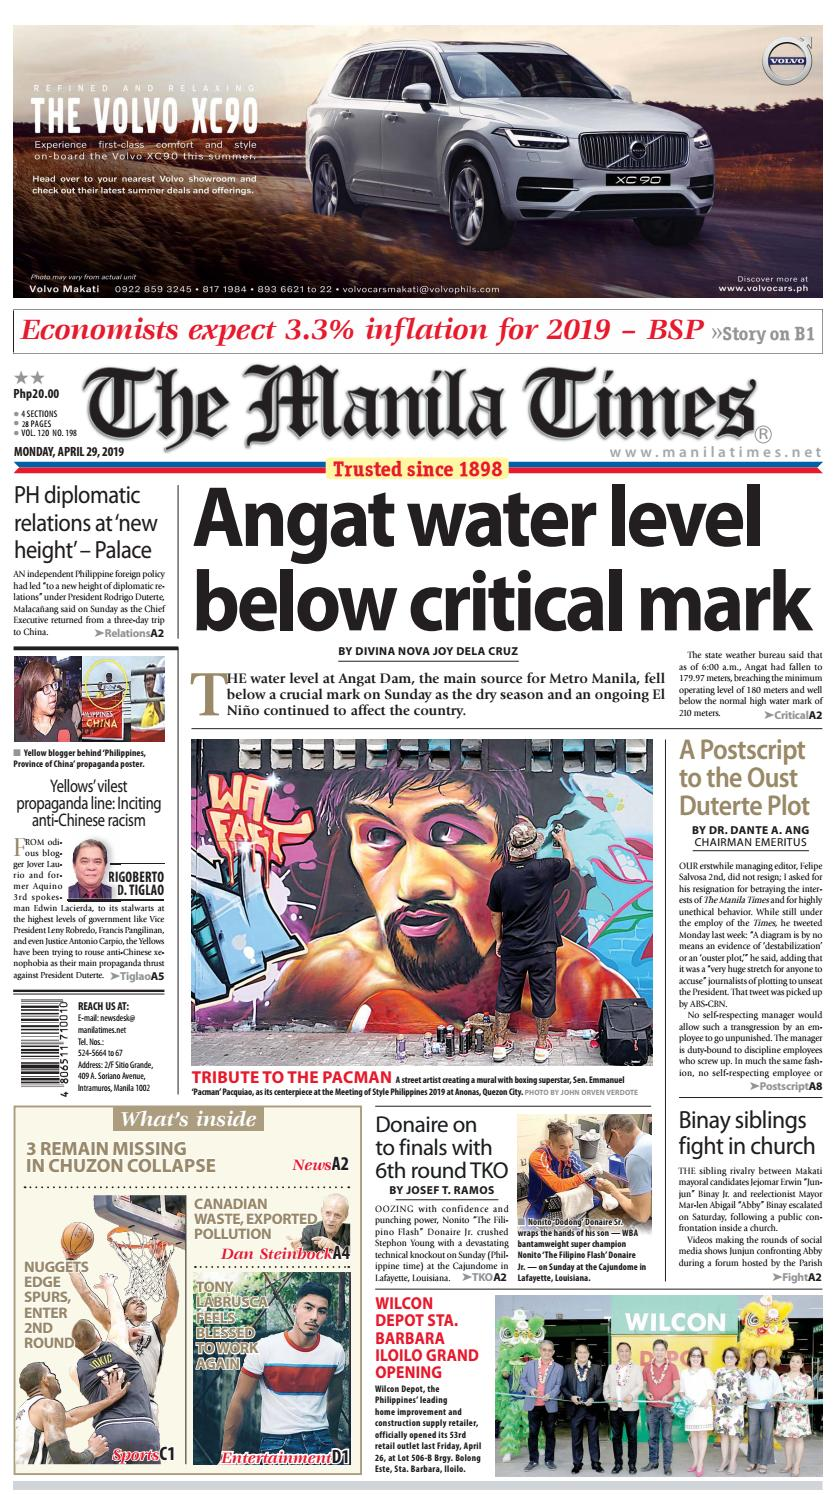 THE MANILA TIMES | APRIL 29, 2019 by The Manila Times - issuu